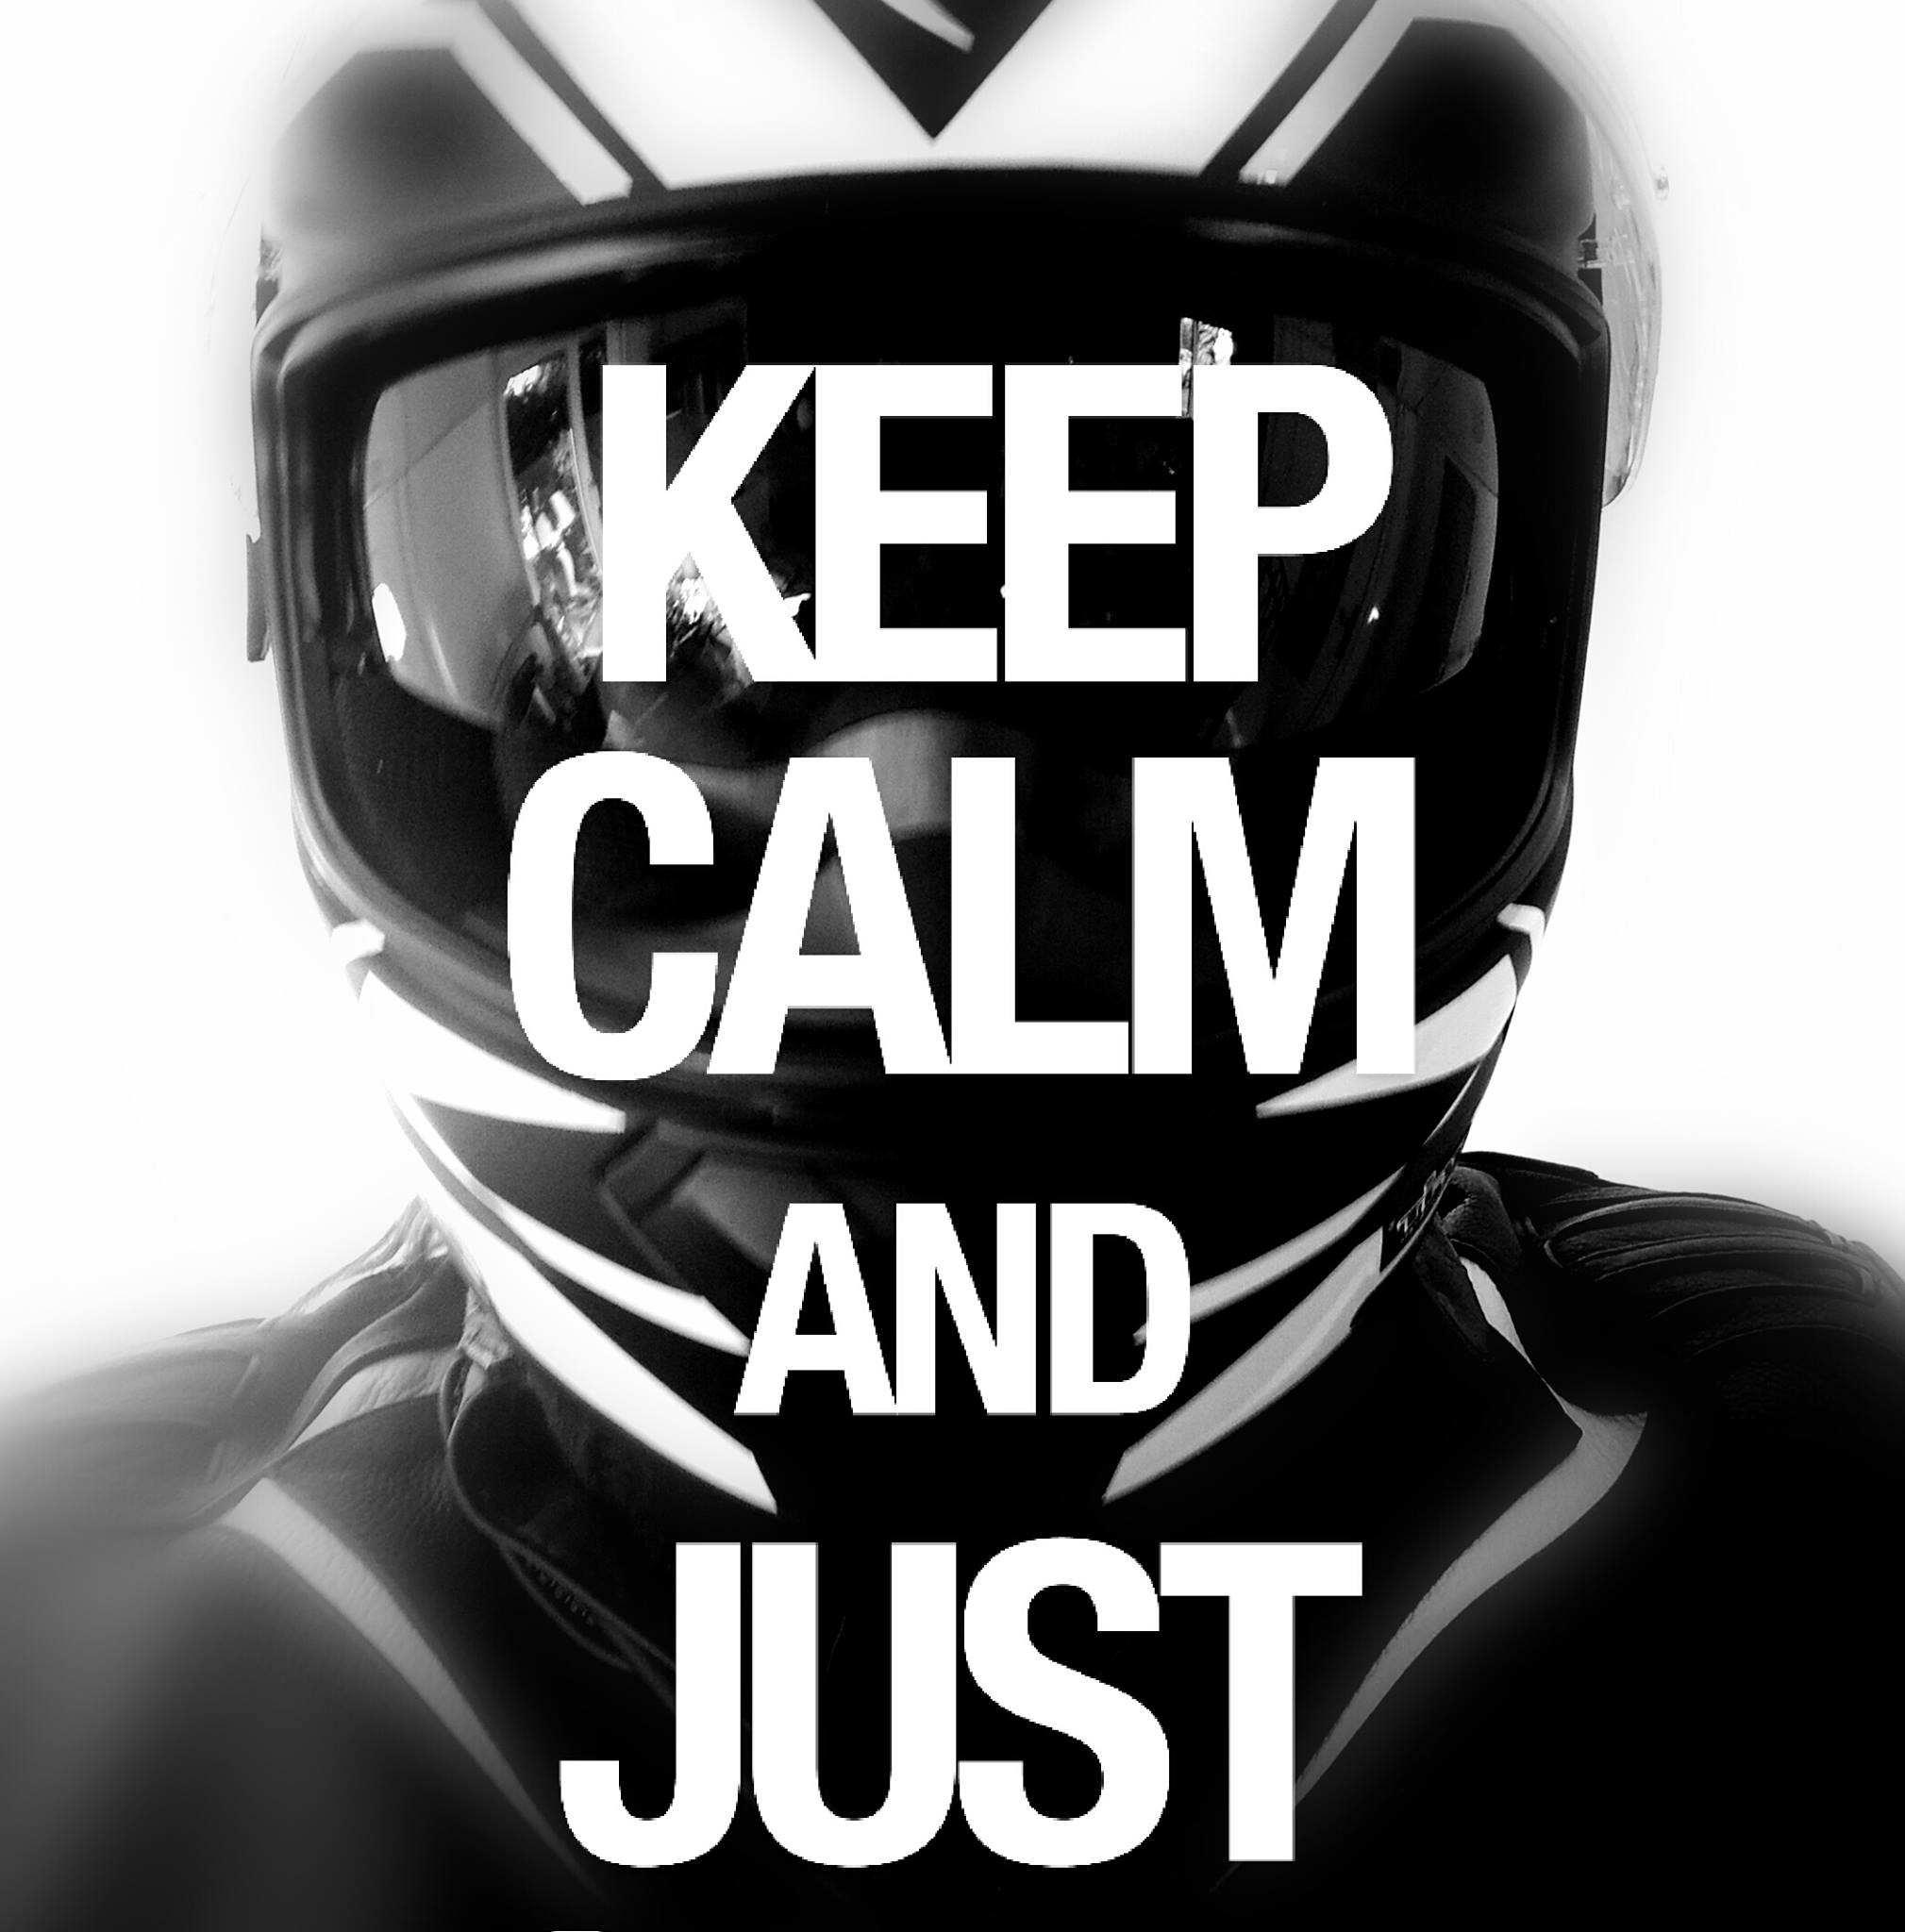 Keep calm and just